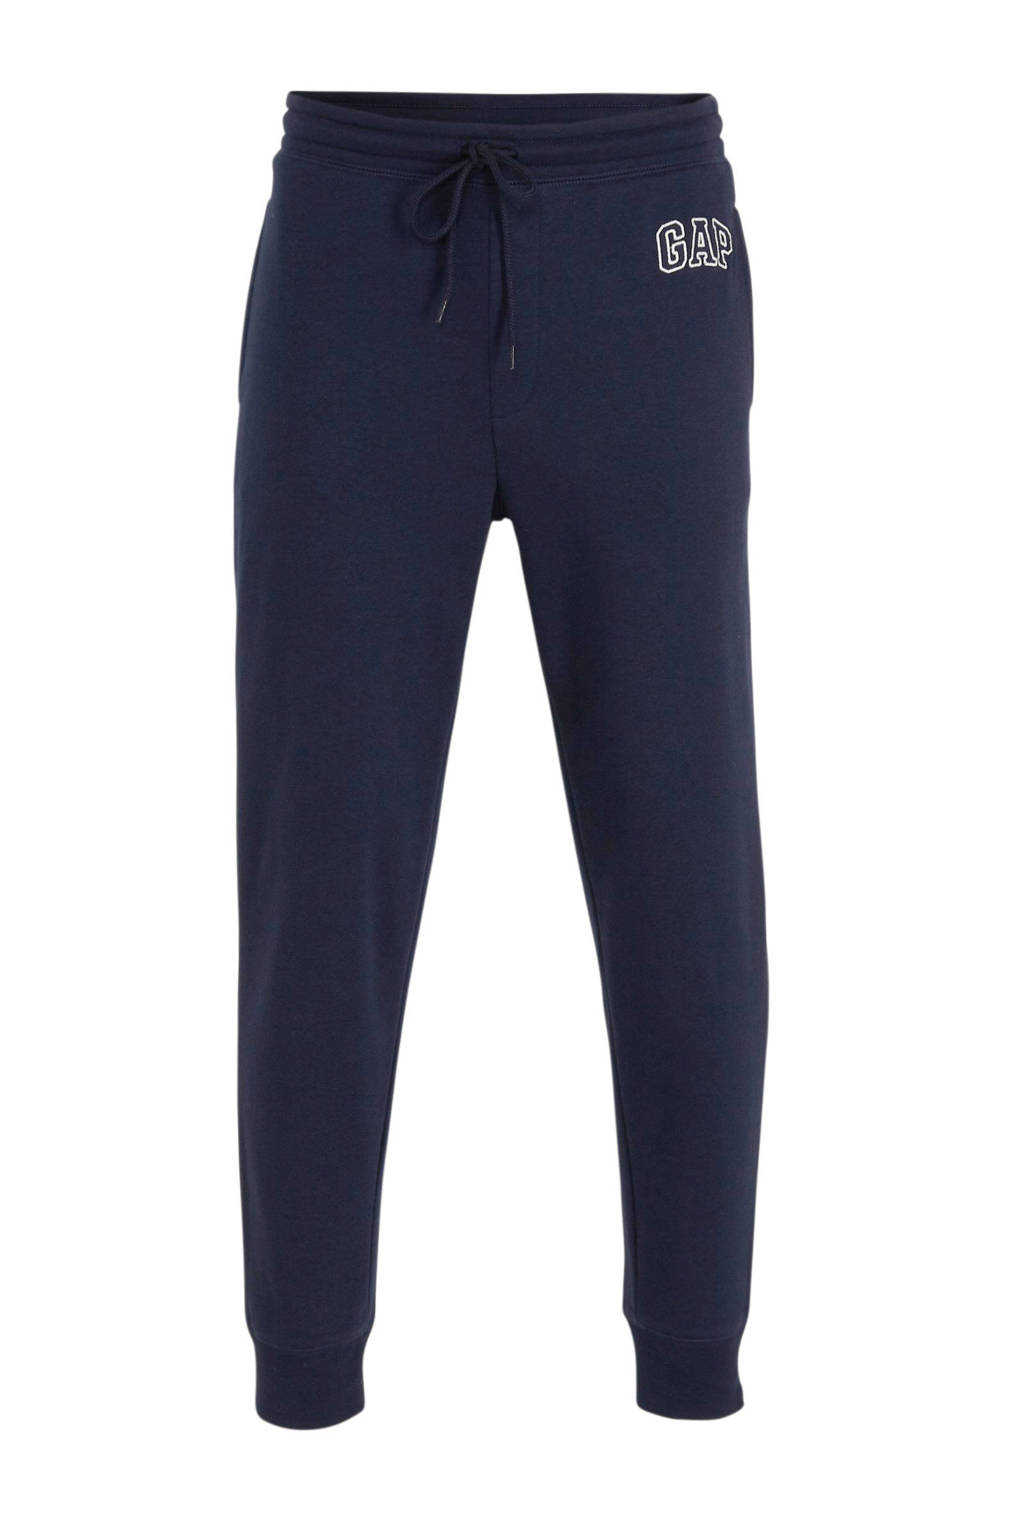 GAP regular fit joggingbroek met logo donkerblauw, Donkerblauw